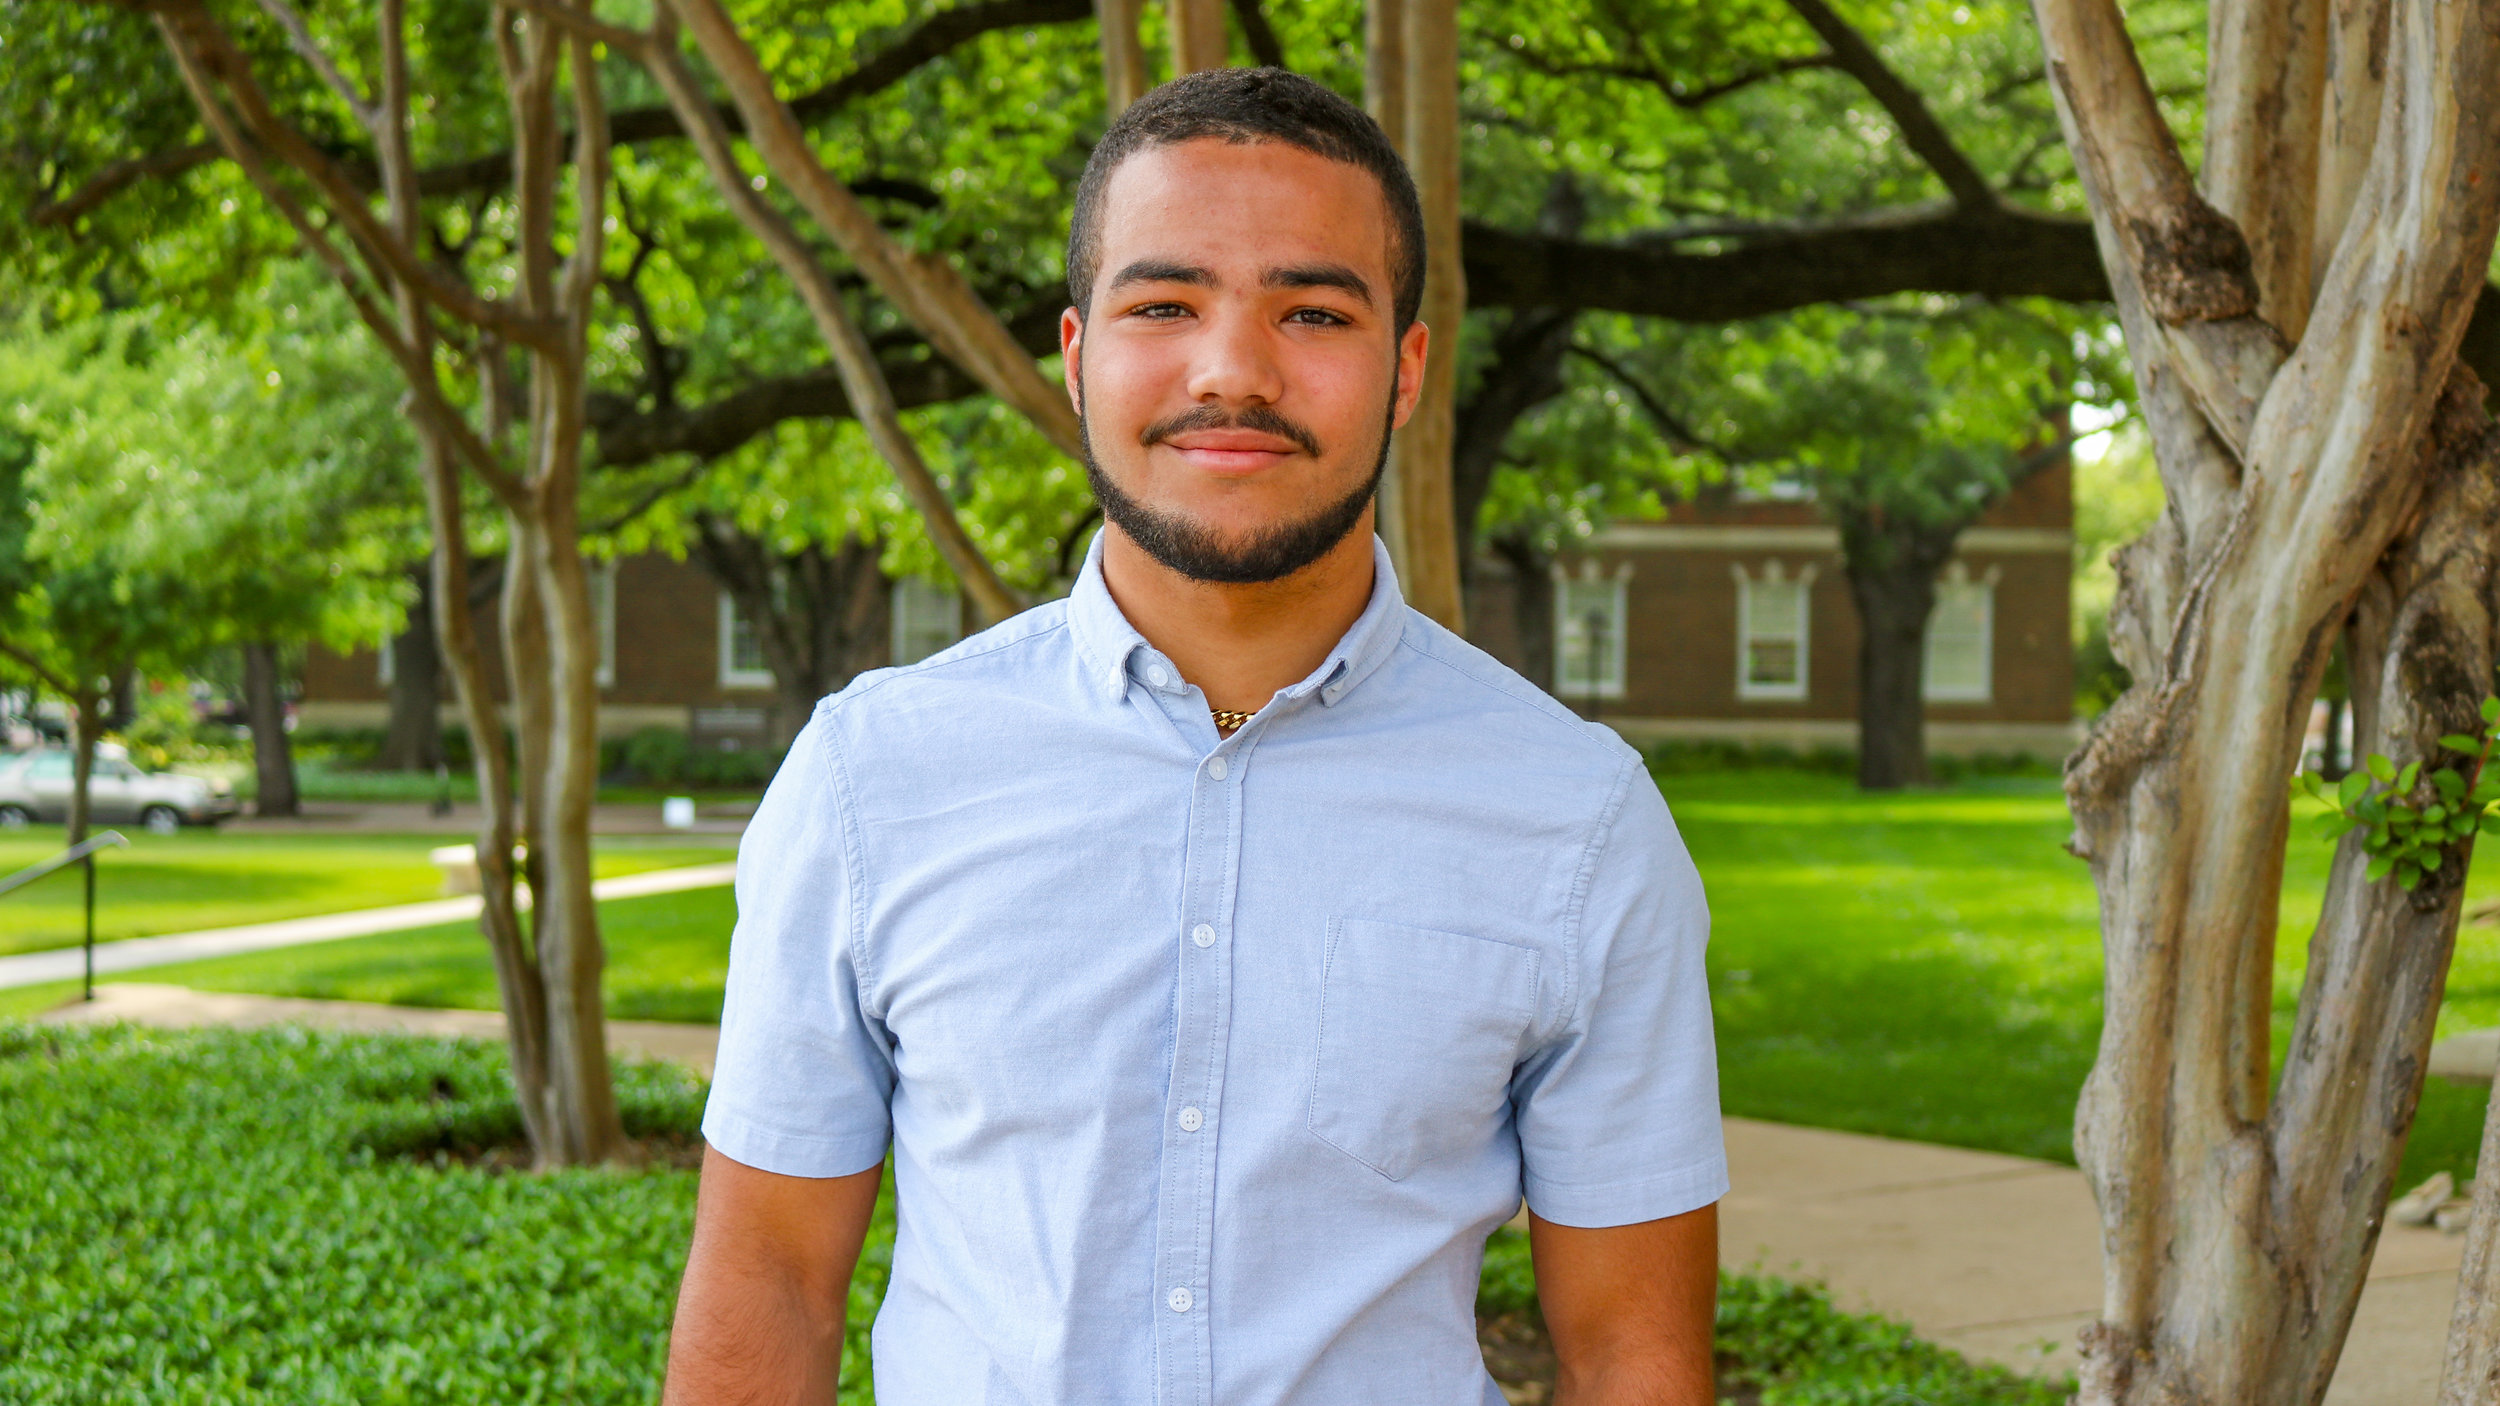 Isaac is a sophomore from Minneapolis, Minnesota who is majoring in Computer Science. He is passionate about video games, building things, and spending time with his close friends. His favorite Boaz event is the Sonday Night Snacks when Heidi has made sopapilla cheesecake. His favorite sports team is the Boaz Beez (Boaz's Intramural team) and if you're looking for him in Boaz he is likely in Kealey's room.